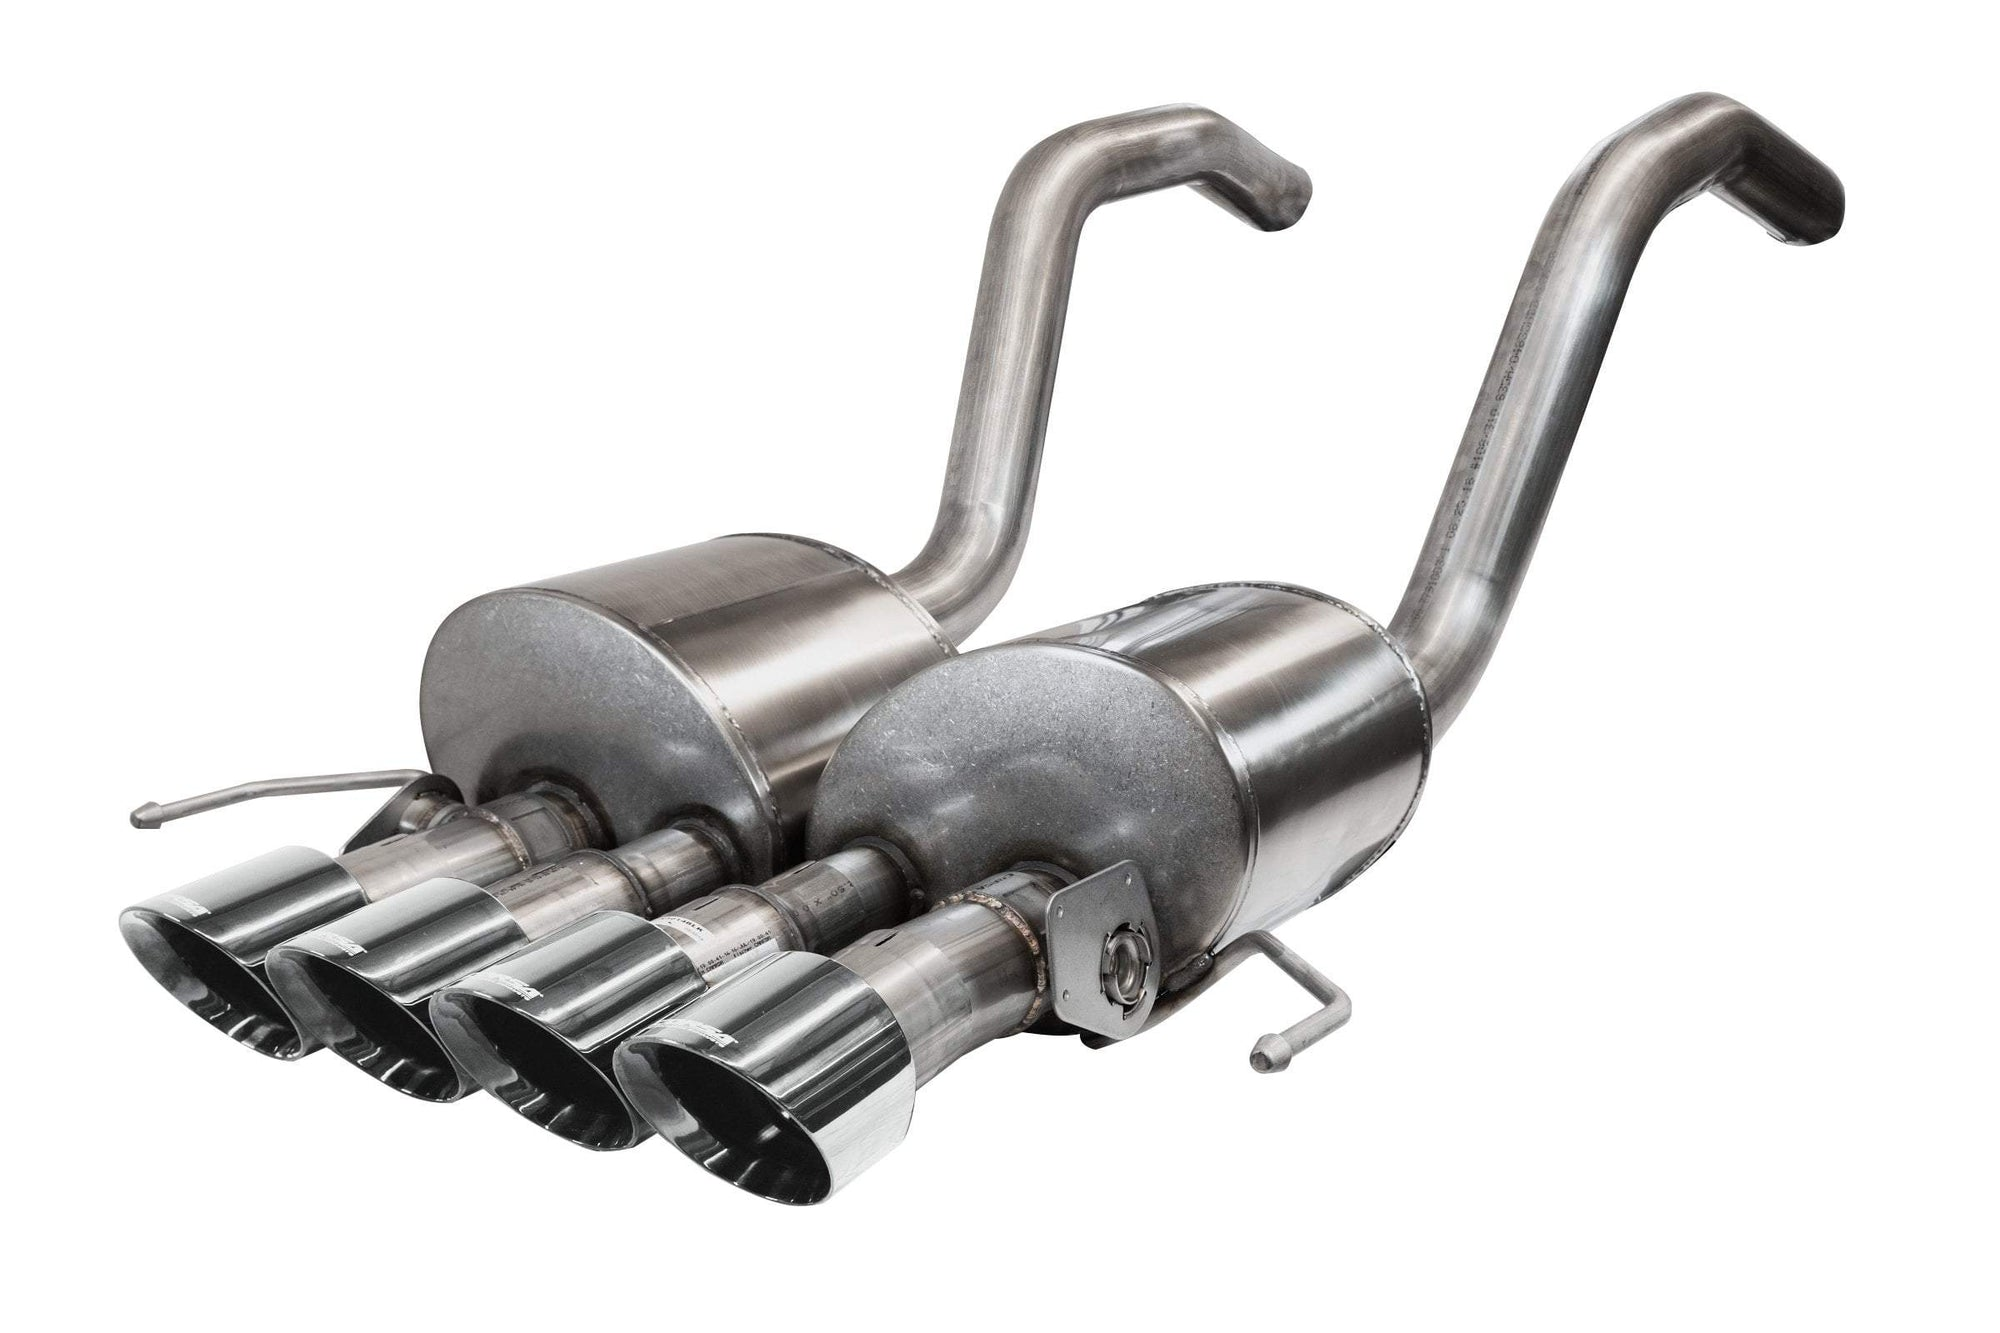 "CORSA PERFORMANCE Active Valve (NPP) Exhaust Polished / Sport to Xtreme / Dual Rear - Quad 4.5in 2015-2019 C7 Chevrolet Corvette 2.75"" Dual Rear Exit Active Valve, Axle-Back, Exhaust System with Quad 4.5"" Tips (14777) Sport to Xtreme Sound Level"